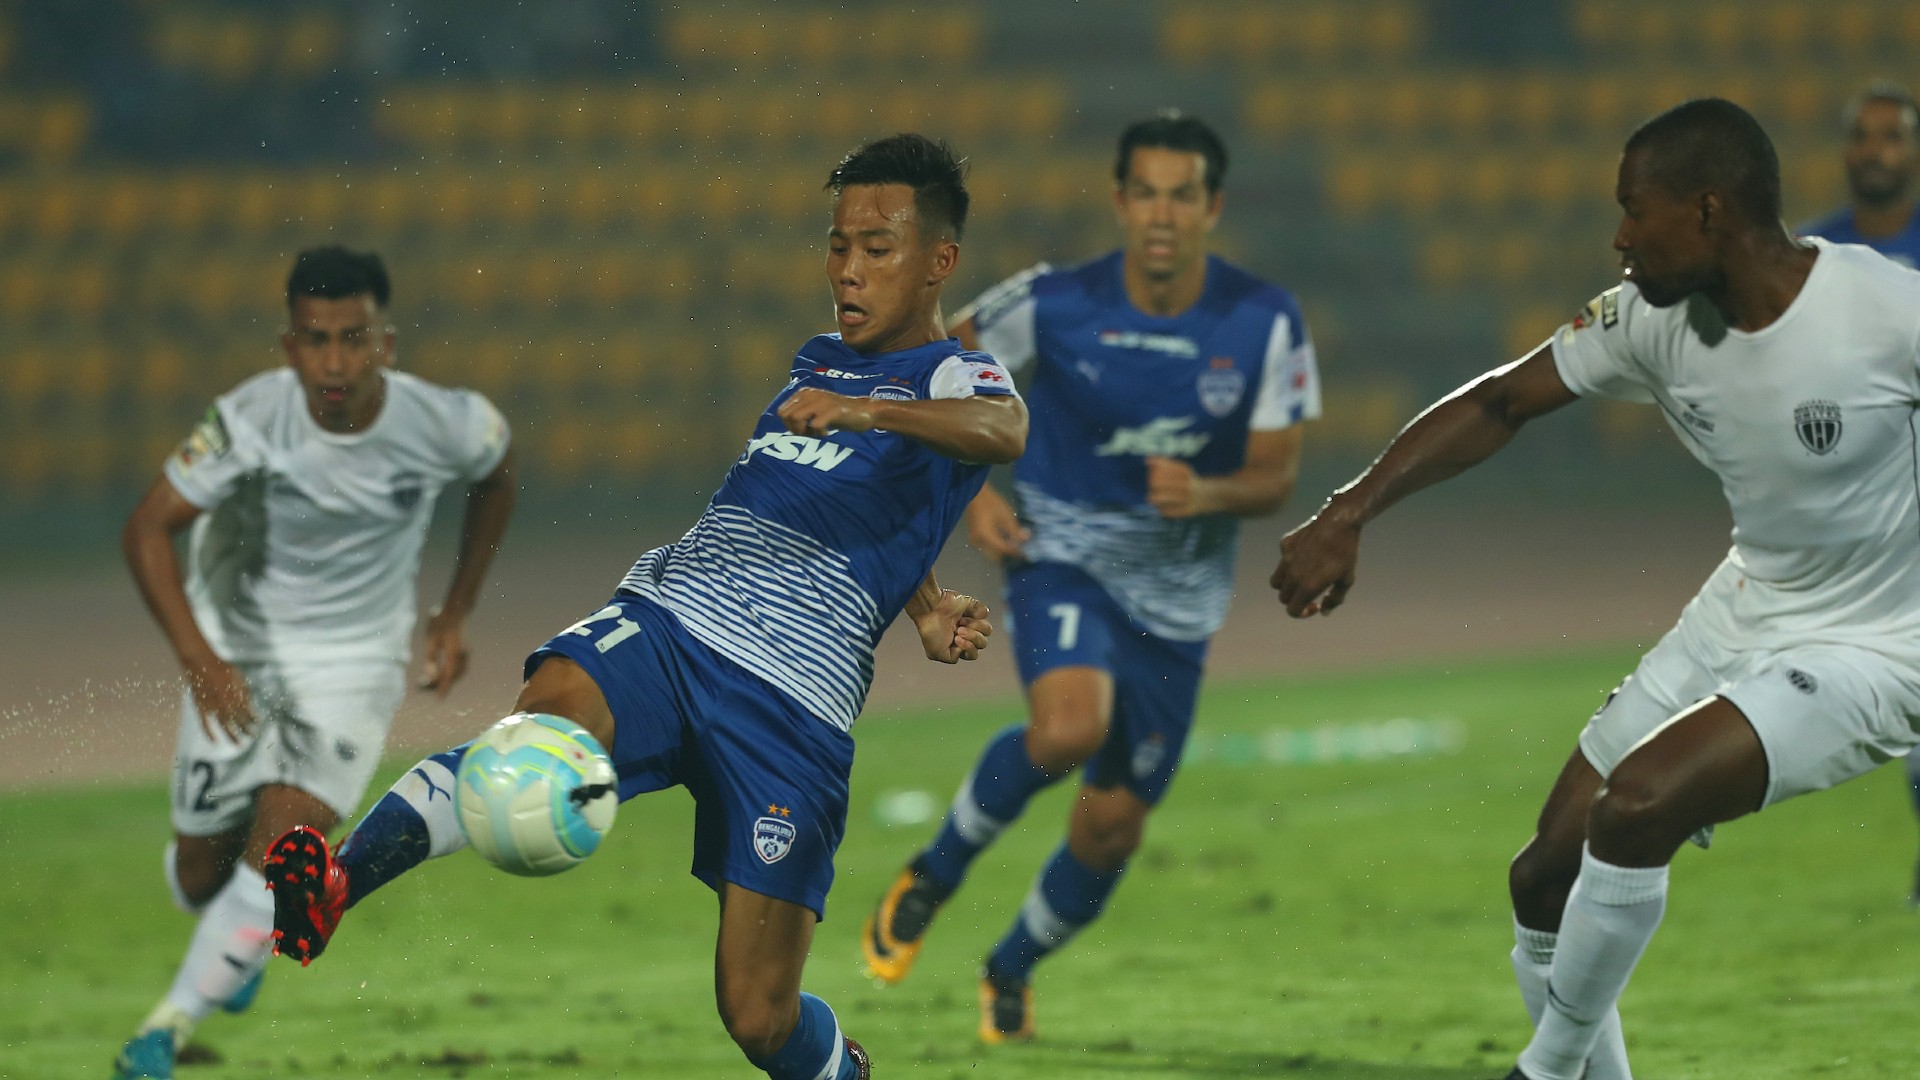 Former Bengaluru FC striker Miku - Udanta Singh can play at the top level in Asia